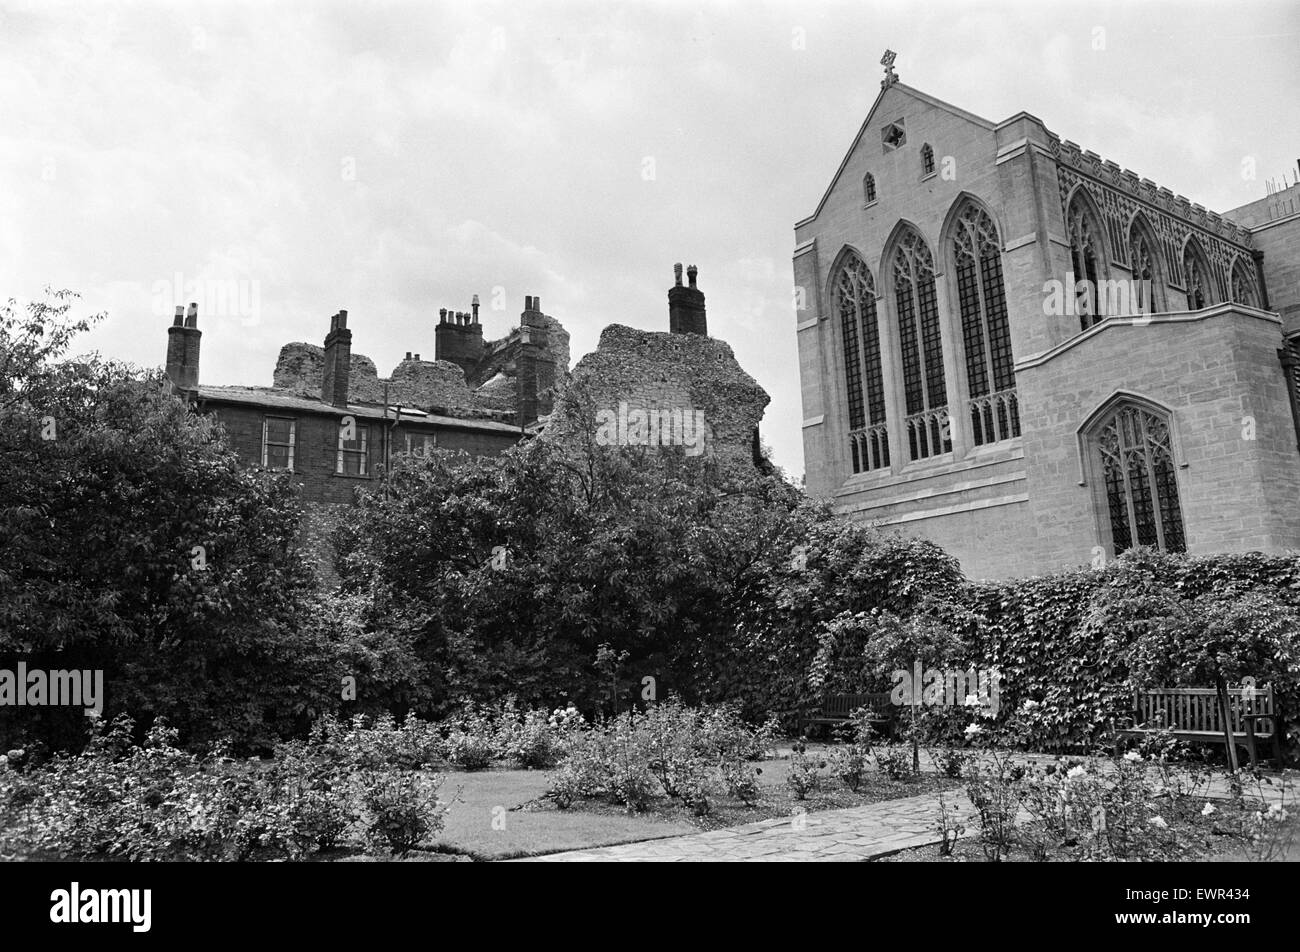 Bury St Edmunds Abbey in Suffolk. 16th August 1968. - Stock Image